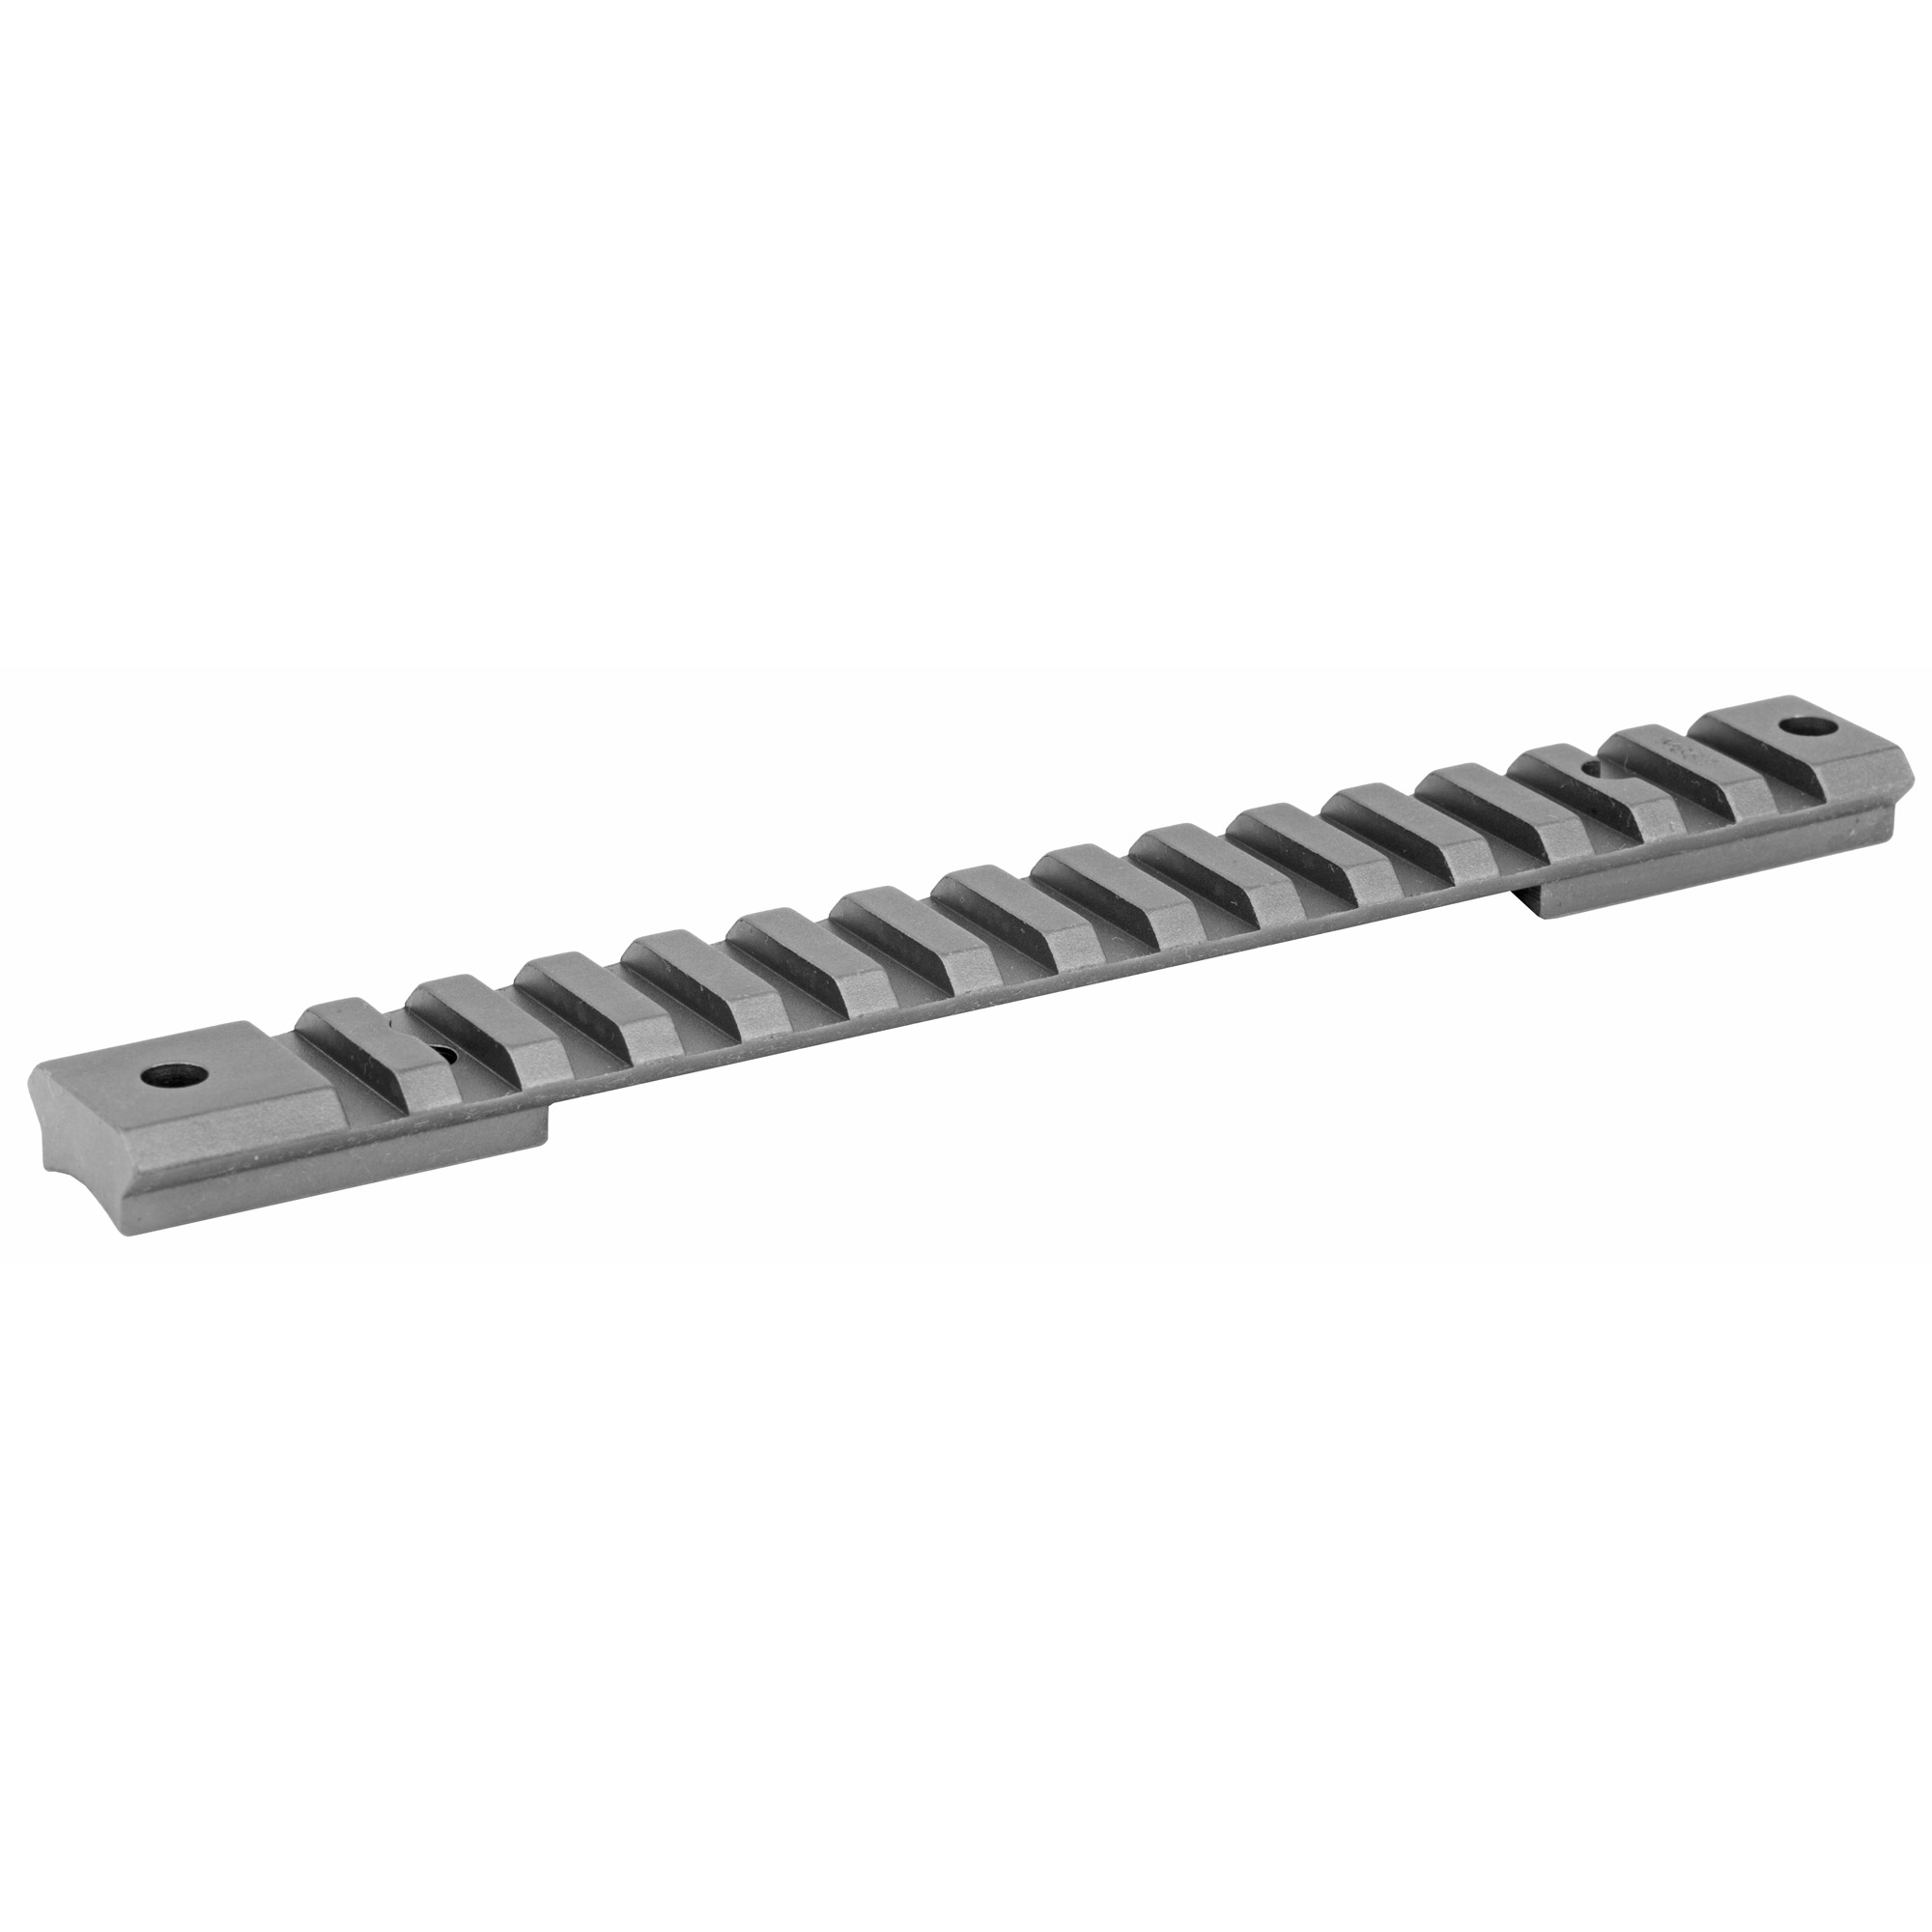 """Machined from solid steel in both standard and 20 MOA configurations"""" Warne Tactical Rails are designed around the Mil-Spec Picatinny style rail system and provide a strong and true platform for optics mounting."""